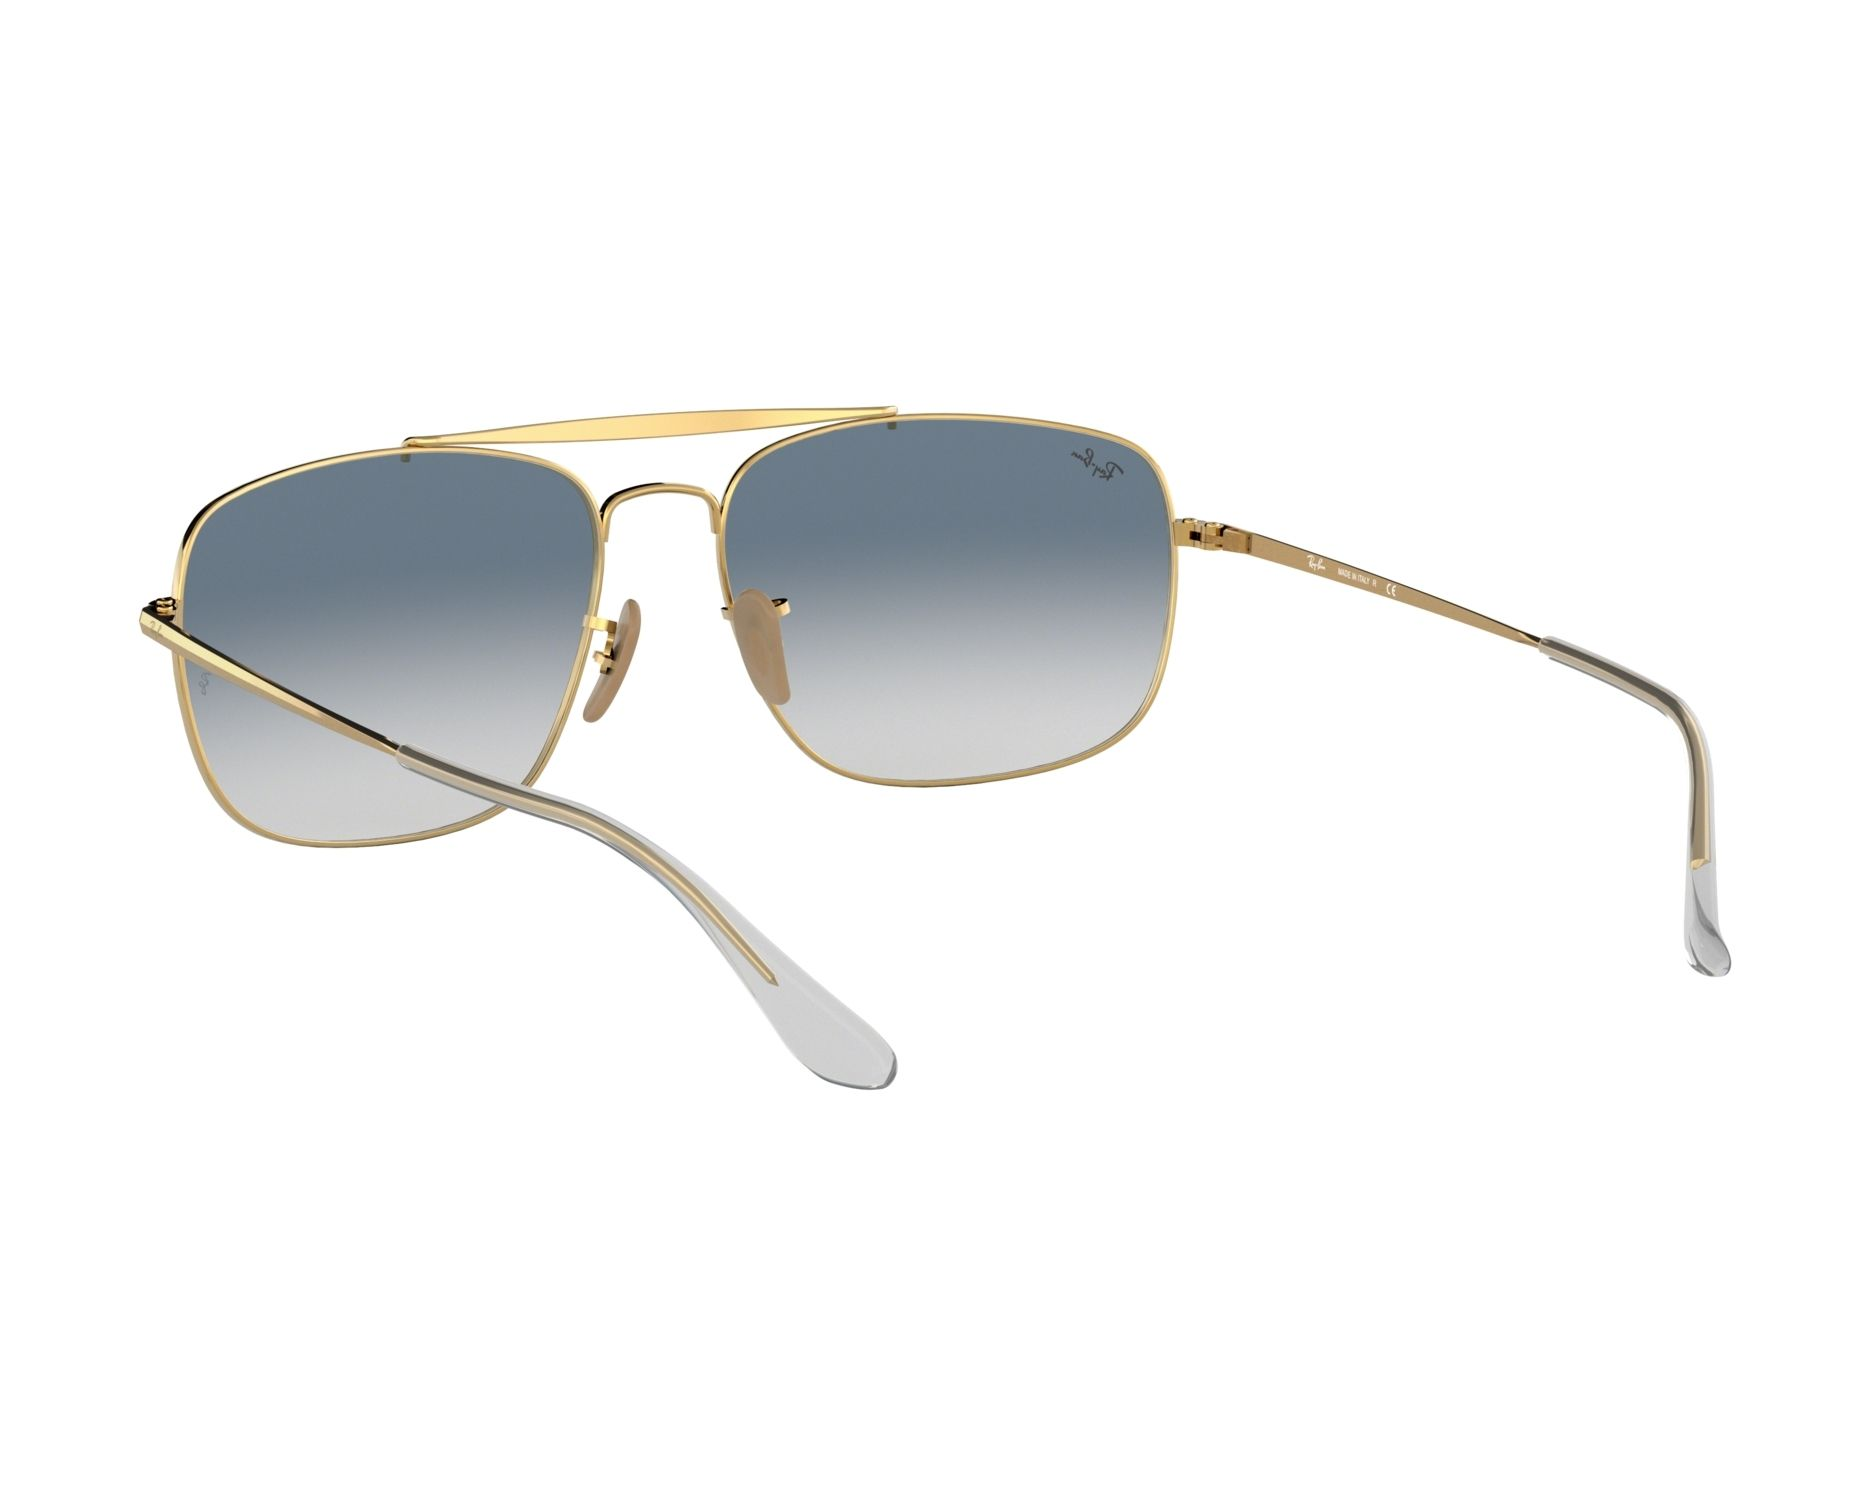 Ray-Ban RB3560 001/3F 61 mm/17 mm 3yLQxP